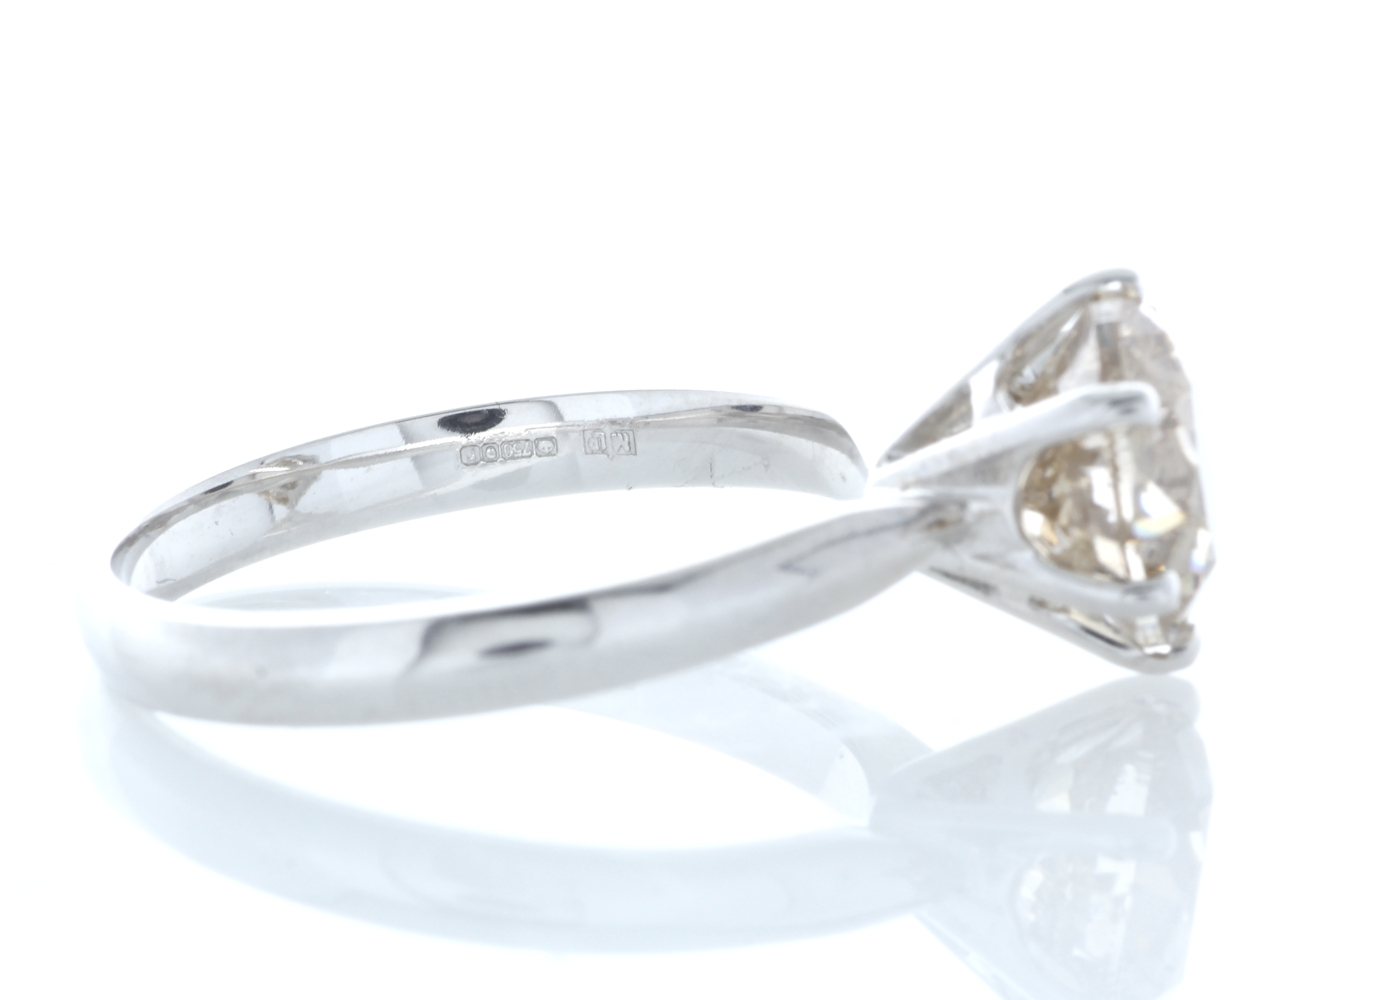 18ct White Gold Single Stone Claw Set Diamond Ring 2.58 Carats - Image 4 of 5